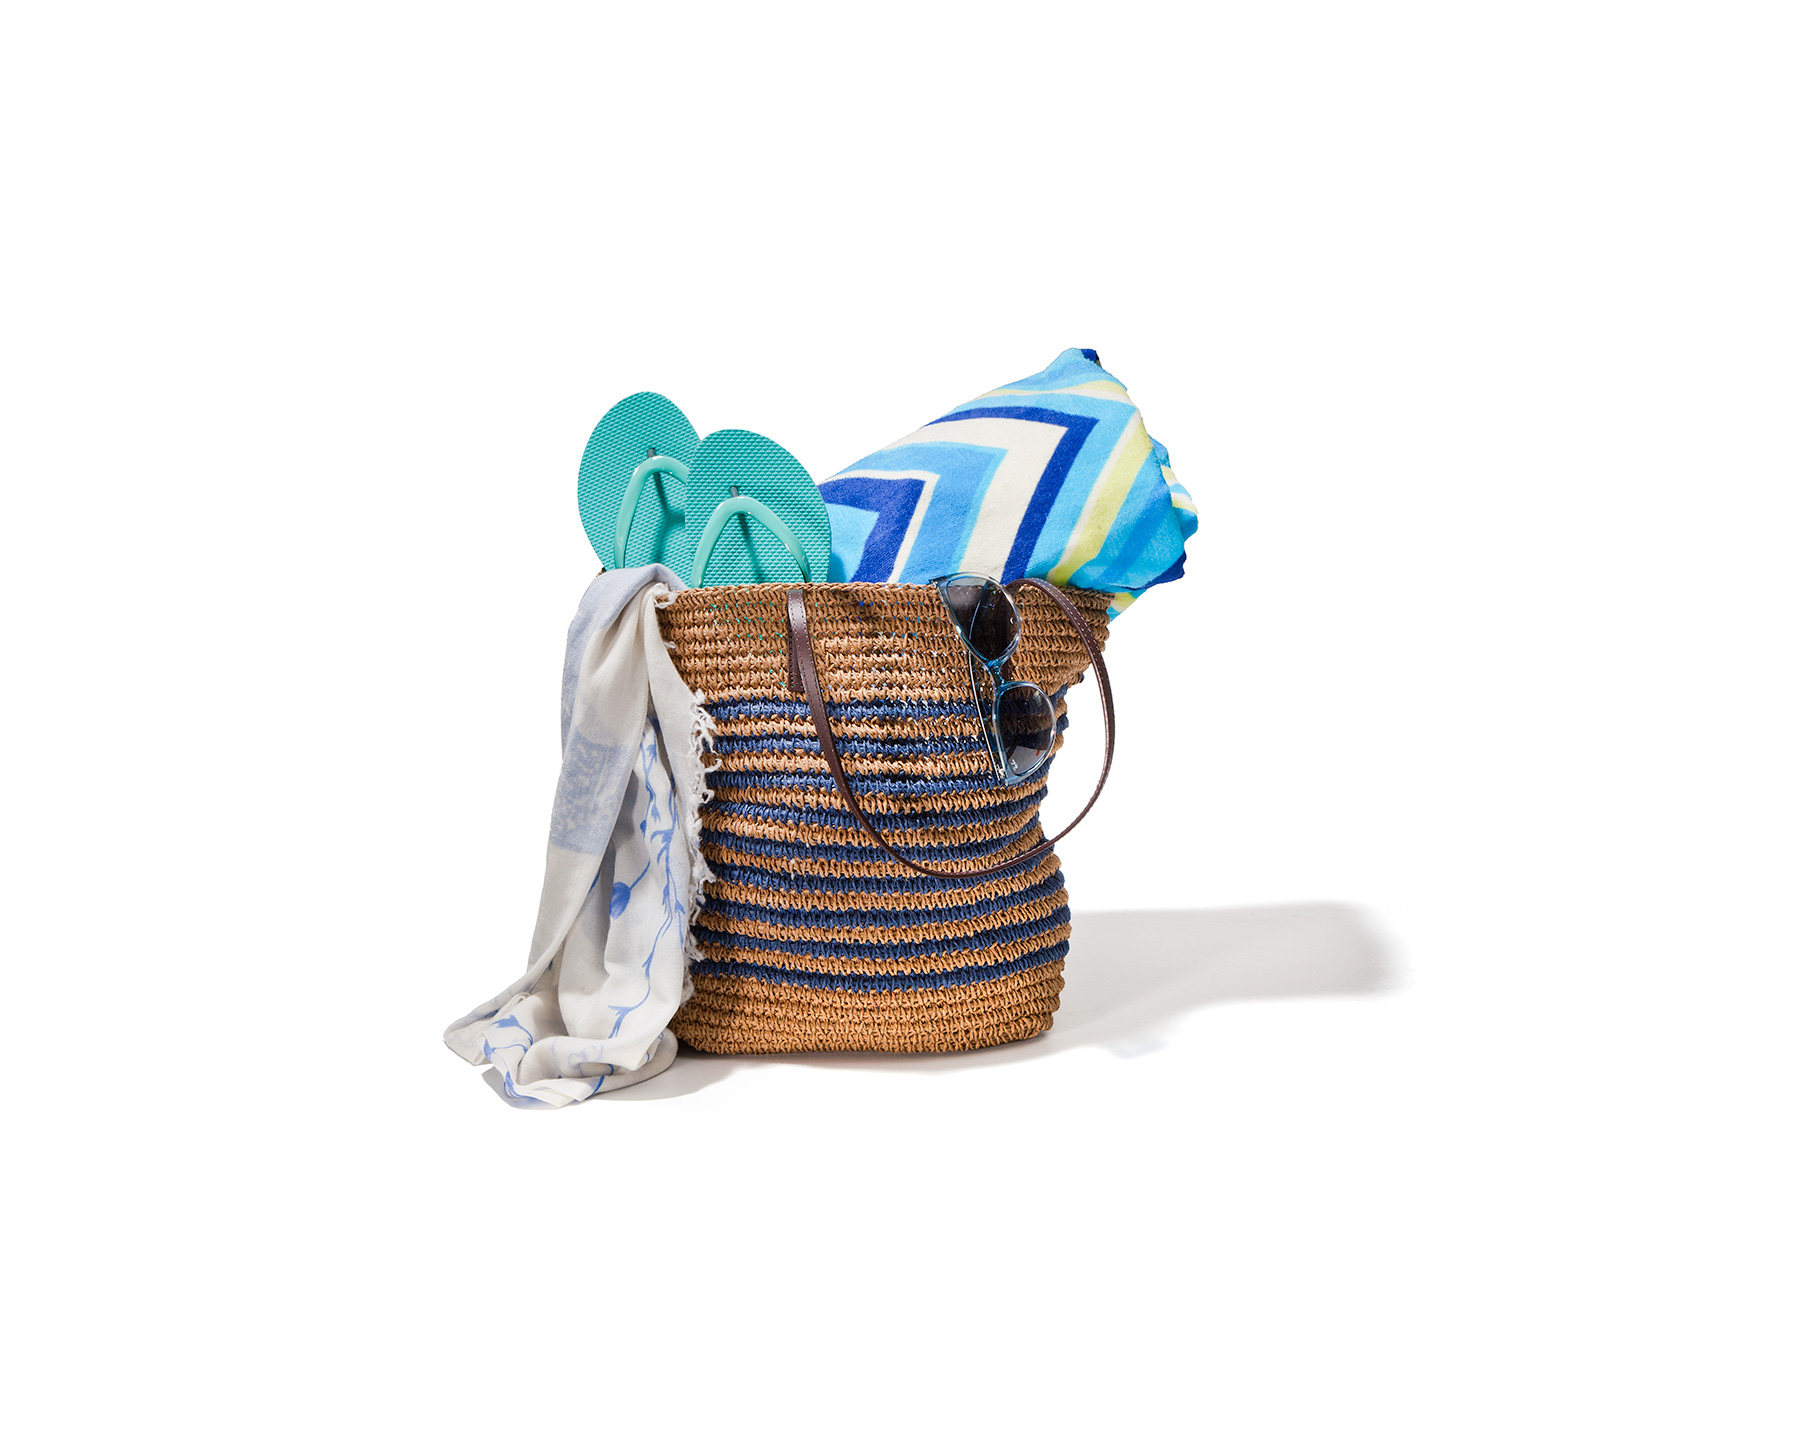 Striped beach bag gift basket for Mother's Day